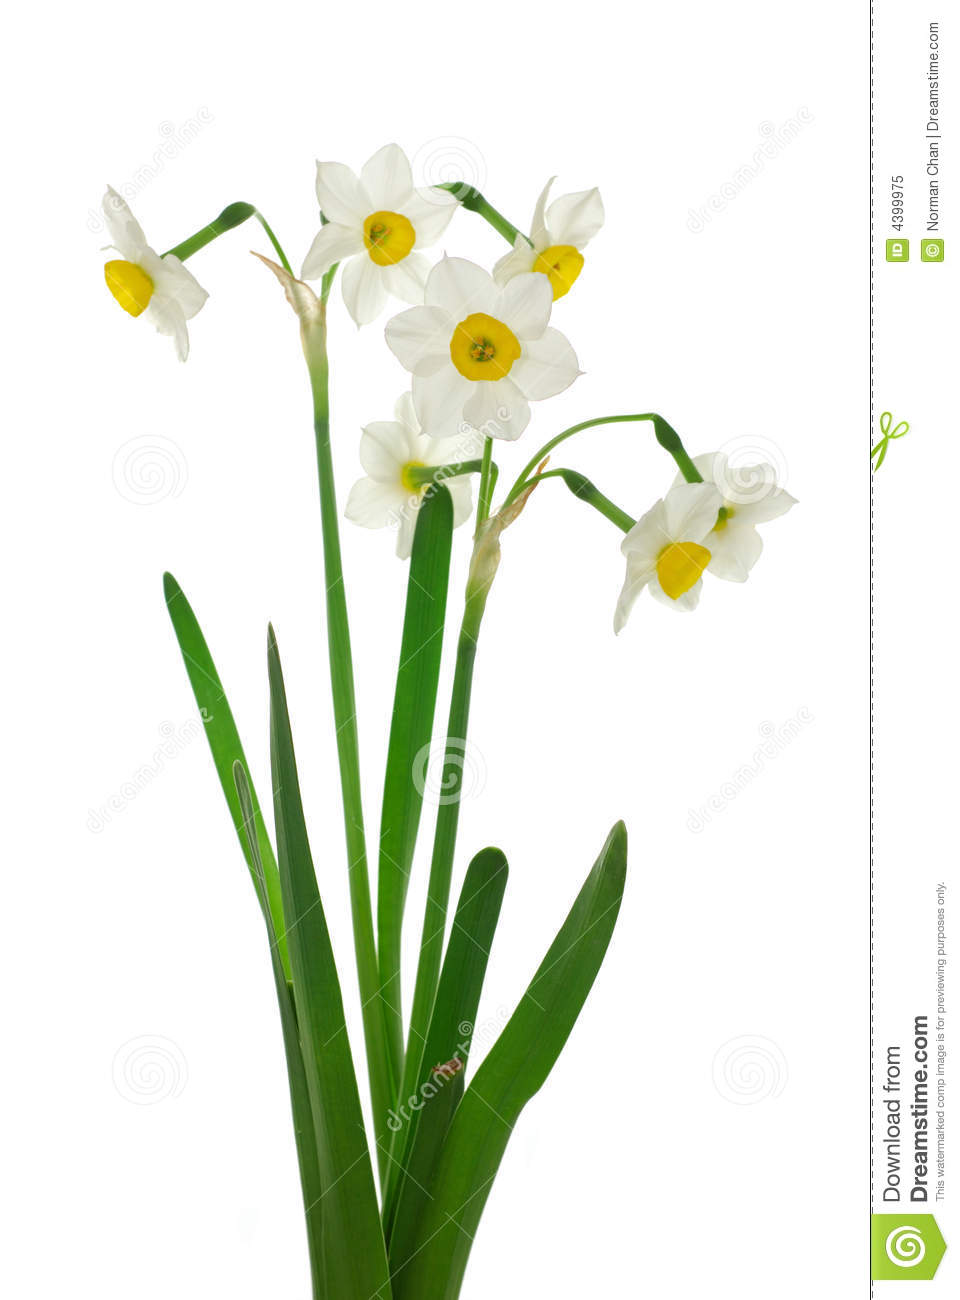 Daffodils Wallpaper Hd Close Up Of White Daffodils Royalty Free Stock Photo